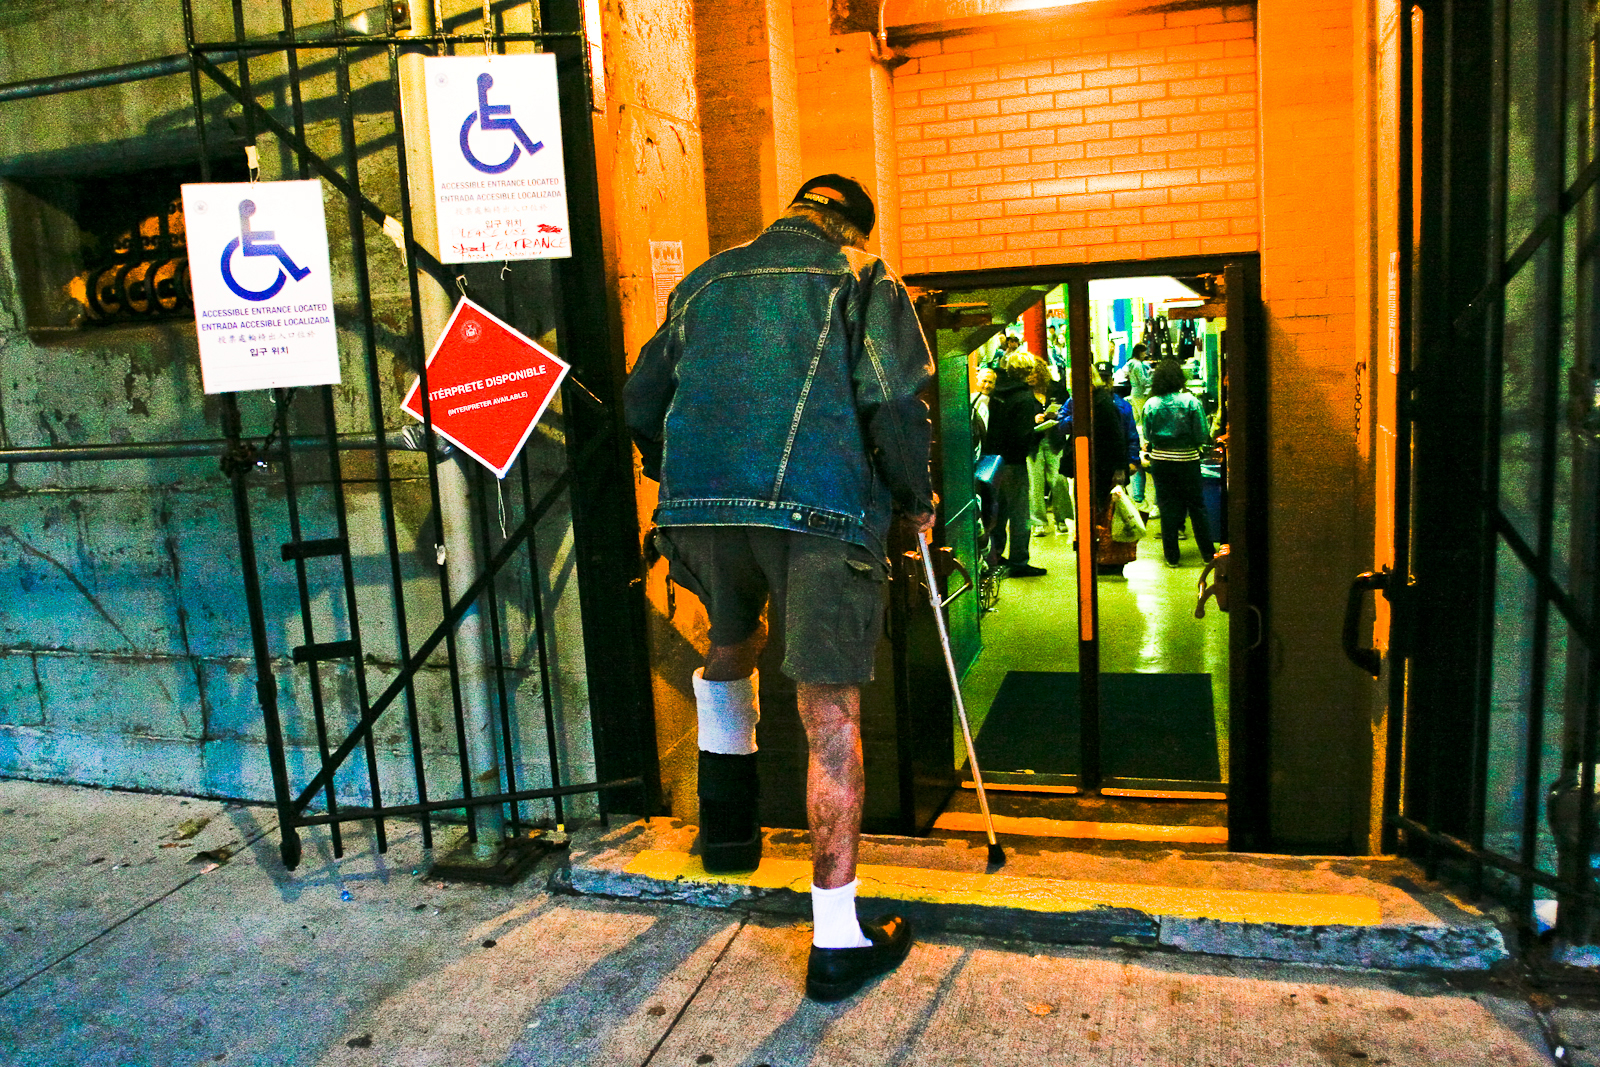 11/04/08. Bay Ridge, Brooklyn, NY. A handicapped veteran makes his way  to cast his vote at PS. 102 on election night just hours before the  polls close.